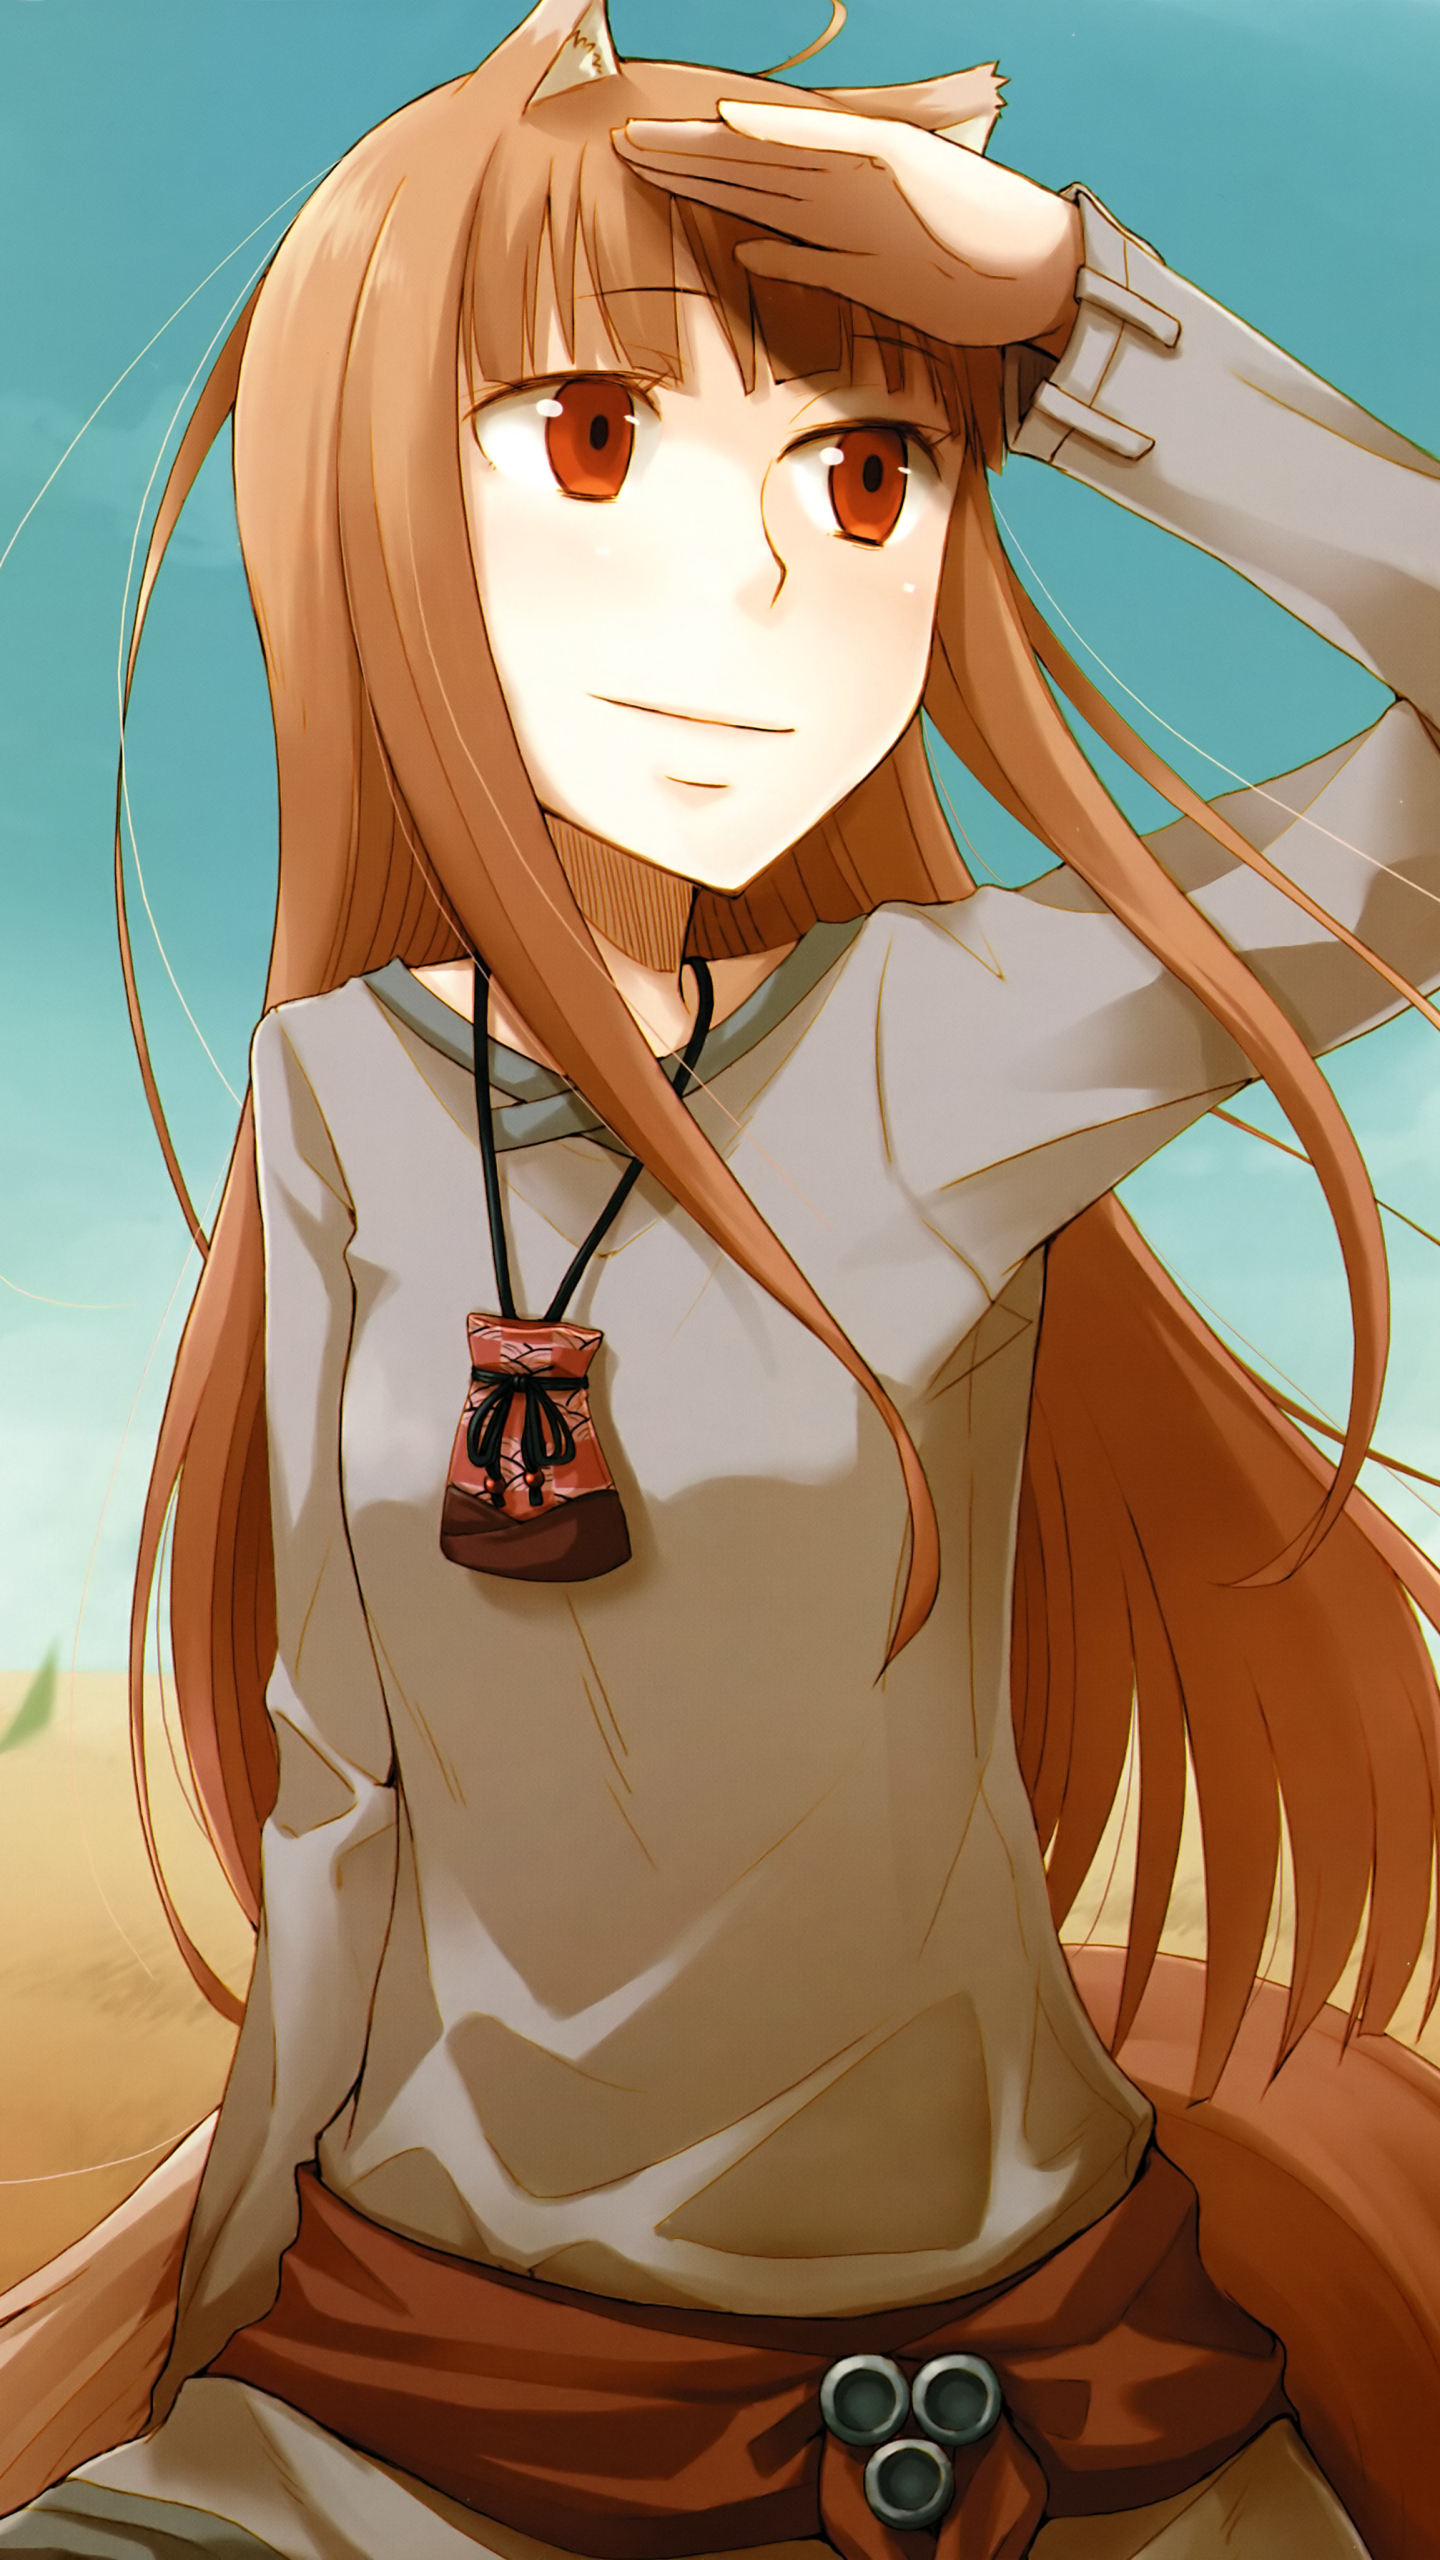 Wallpaper Holo Spice And Wolf Phone 369519 Hd Wallpaper